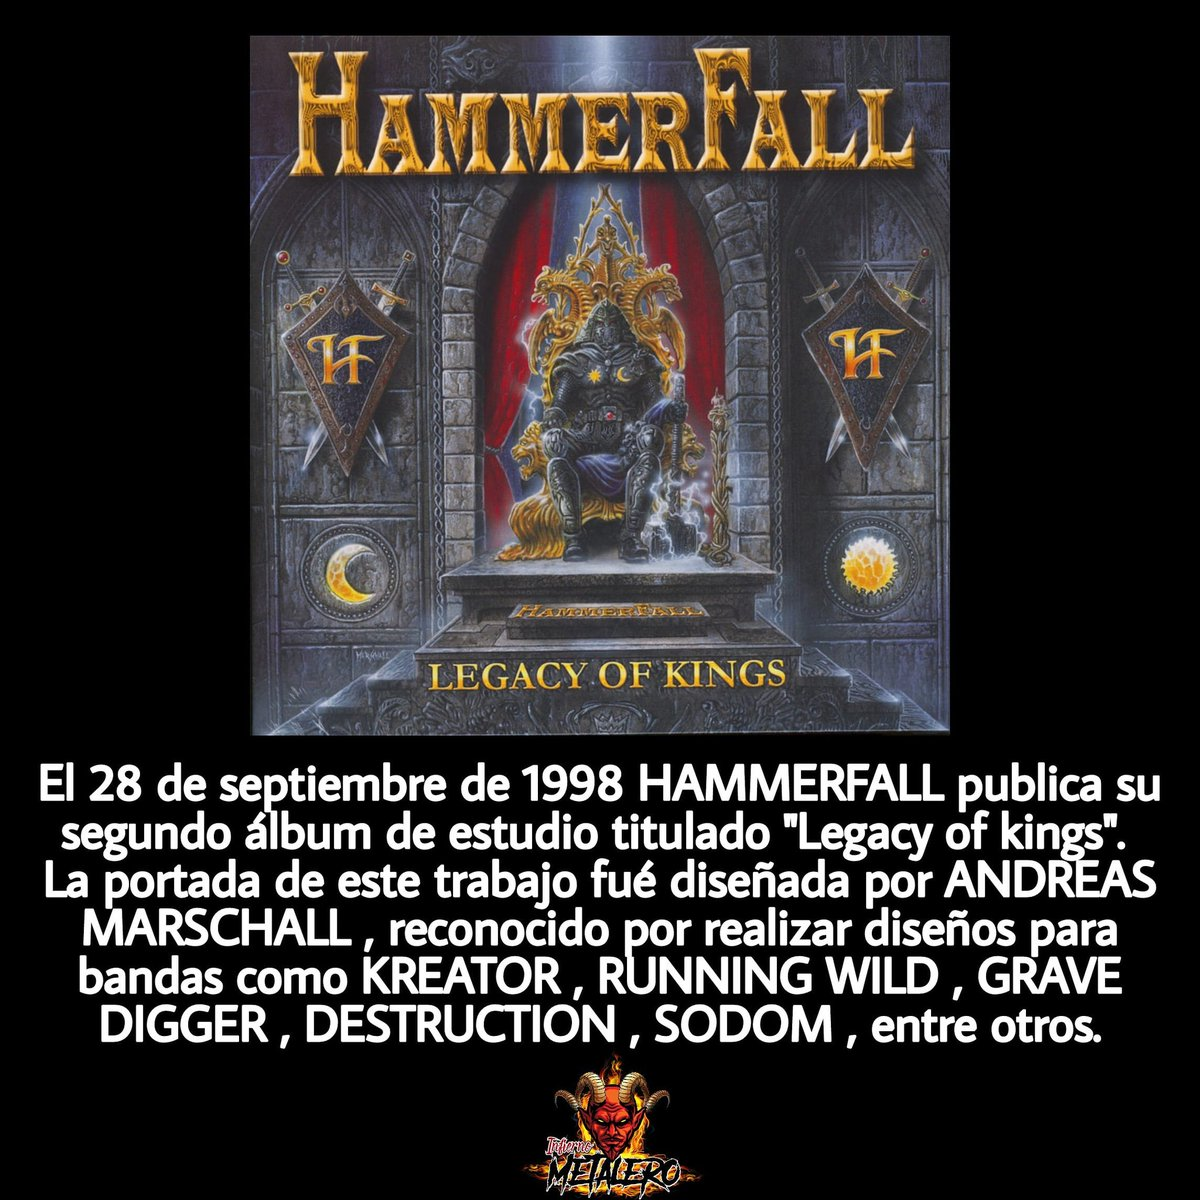 #SabíasQué #28Sep #hammerfall #legacyofkings #andreasmarchall #🤘 #infiernometalerofficial #rock #alterno #metalheads #metal https://t.co/1gBYeZVX4S